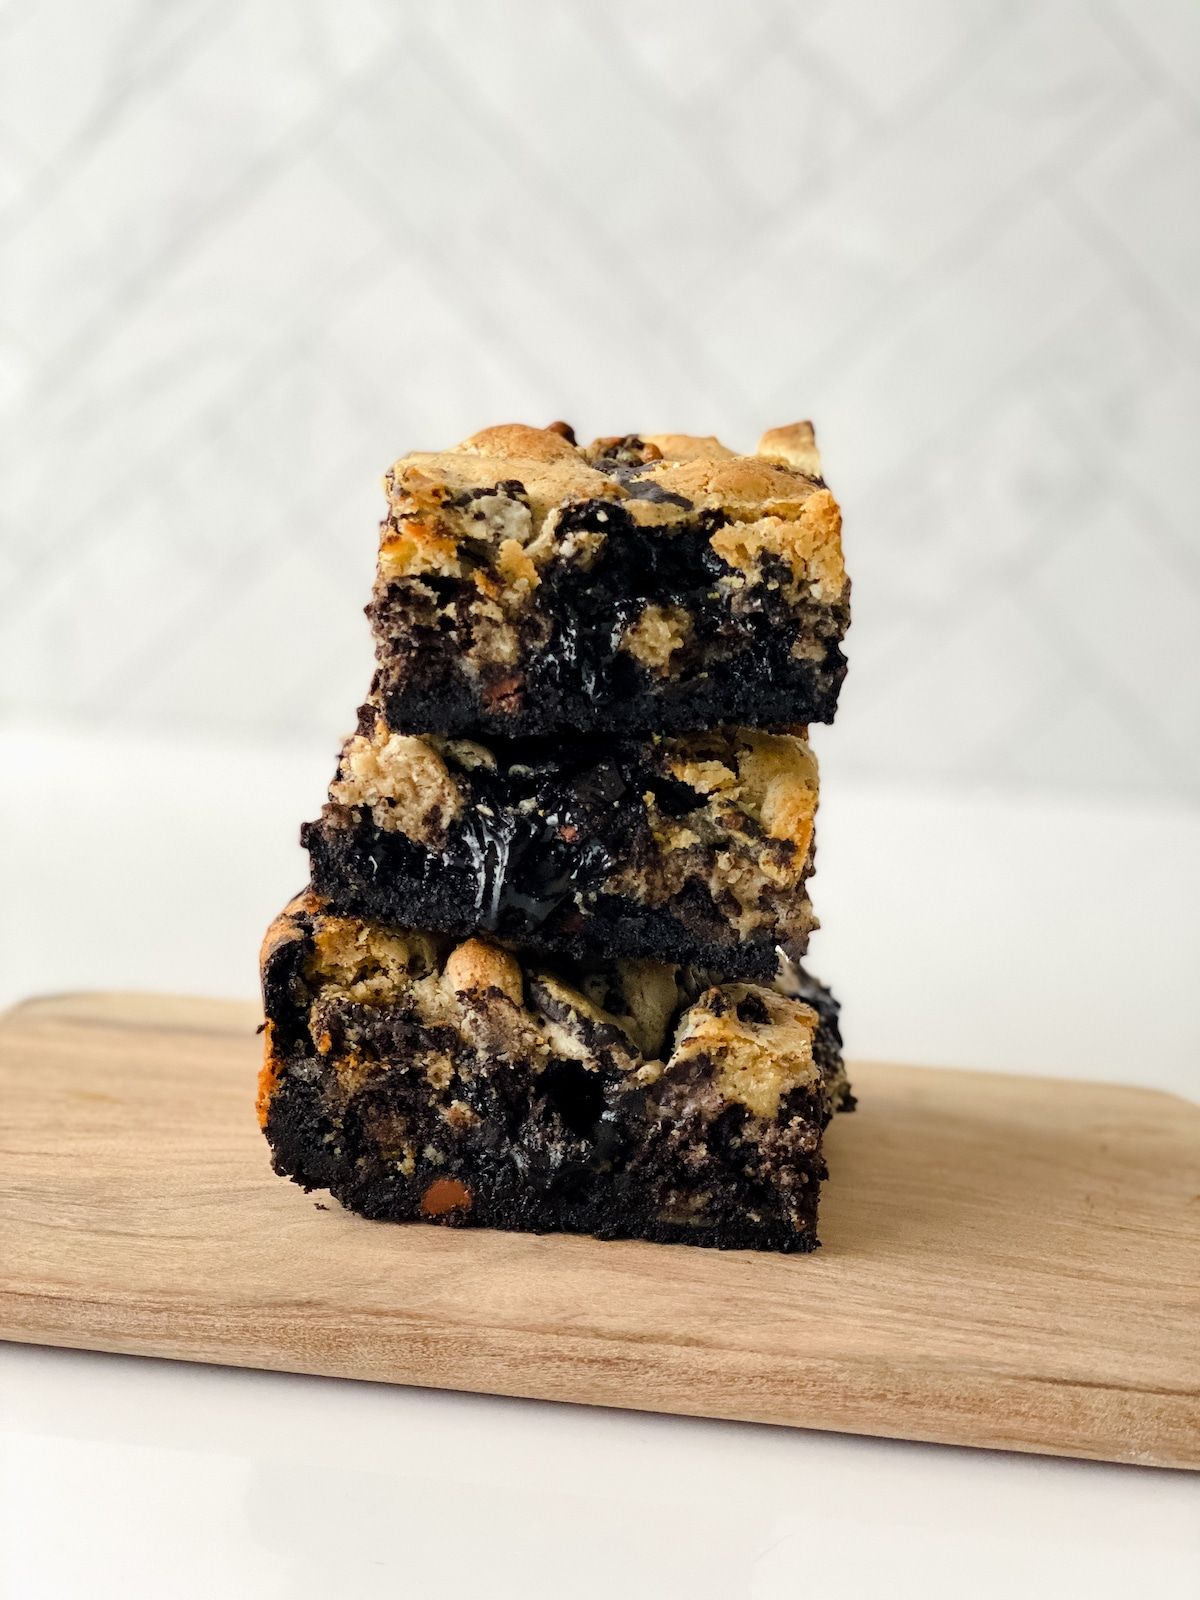 Stack of three brownies on wooden board on white counter